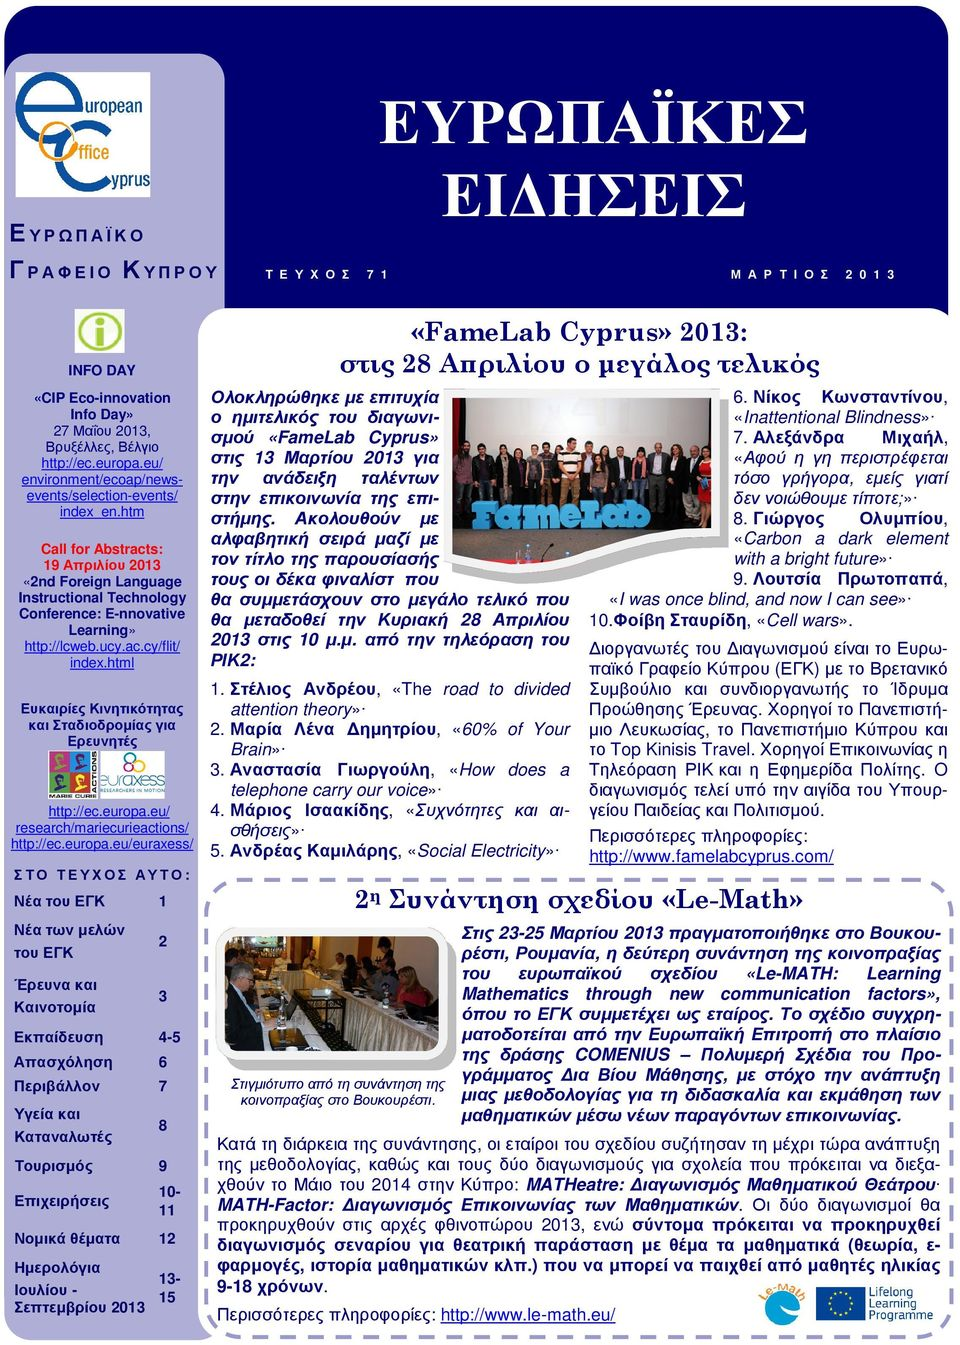 htm Call for Abstracts: 19 Απριλίου 2013 «2nd Foreign Language Instructional Technology Conference: E-nnovative Learning» http://lcweb.ucy.ac.cy/flit/ index.